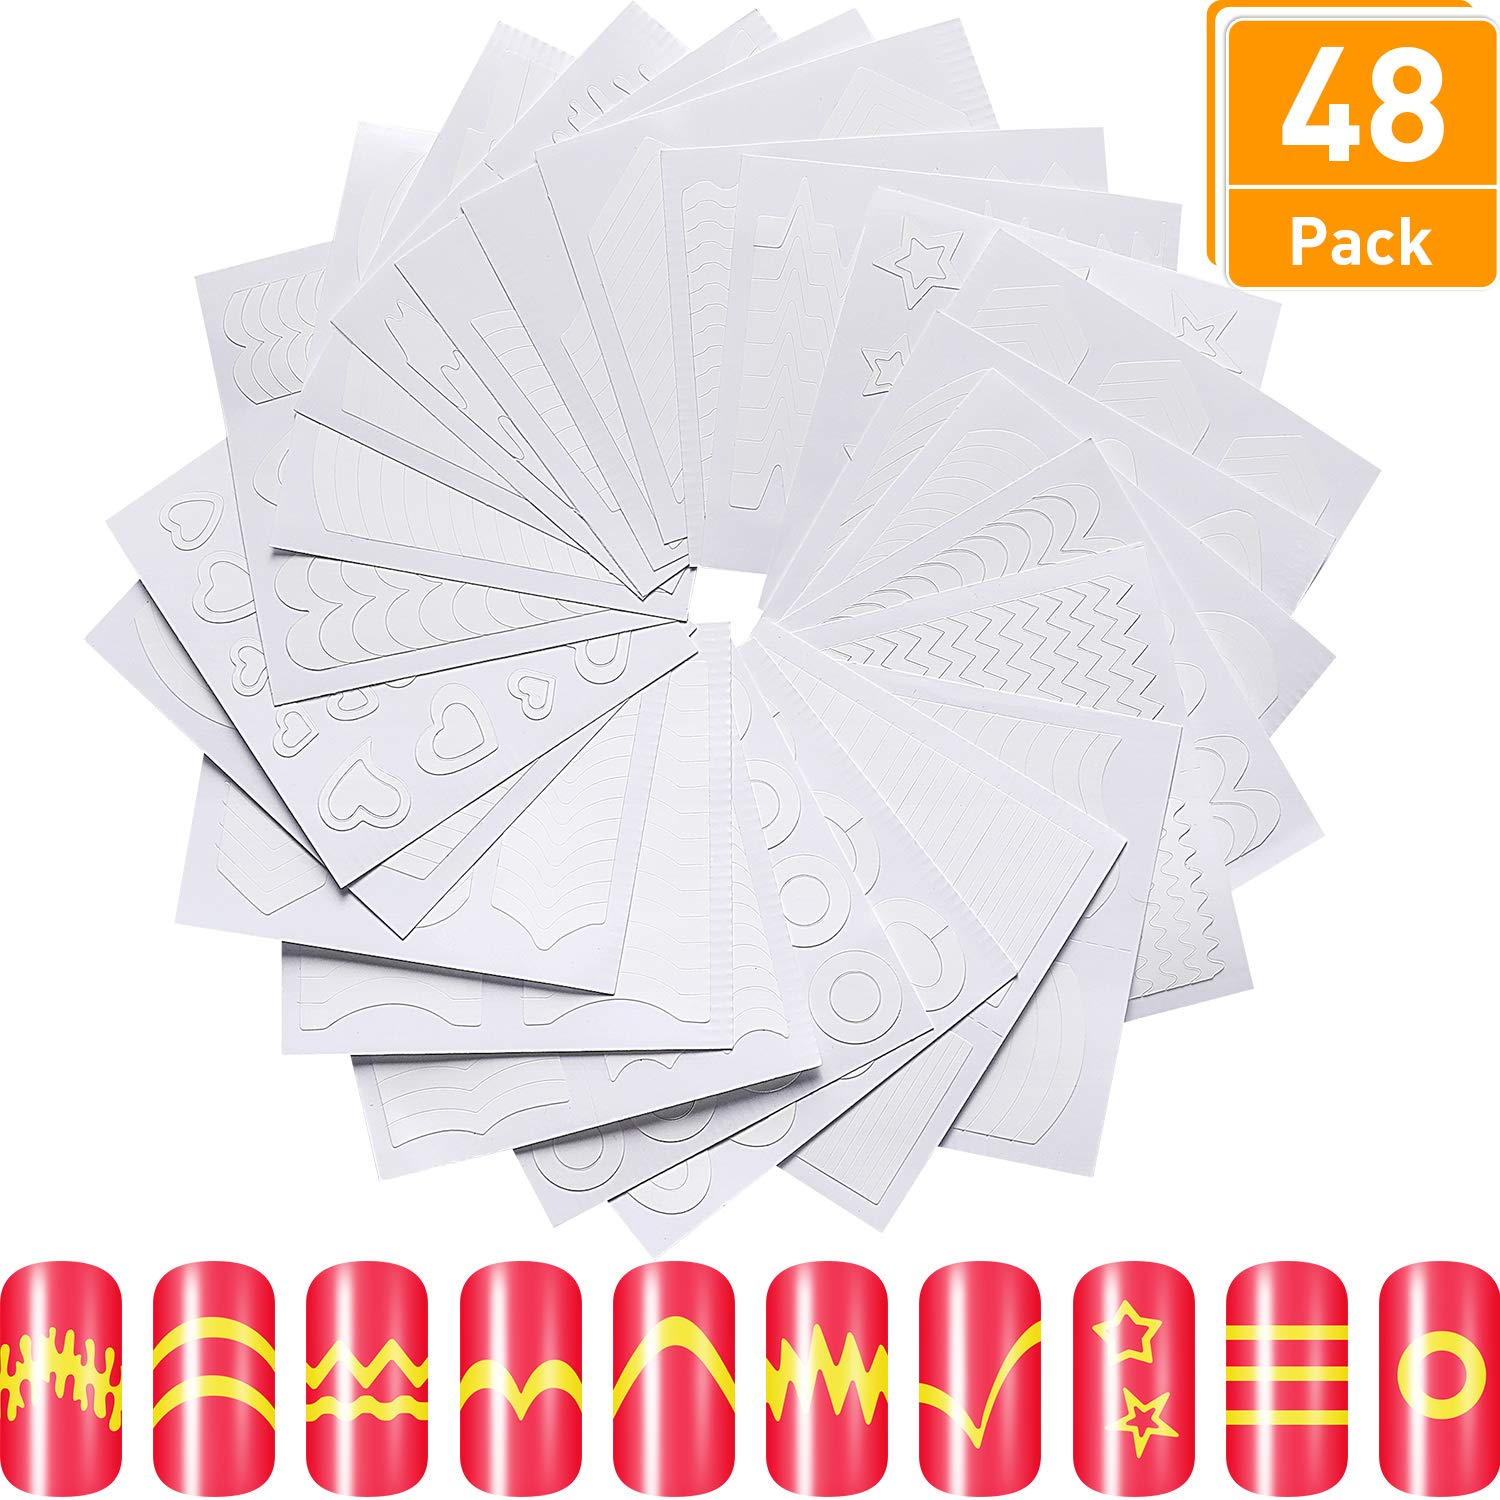 1544 Pieces 34 Design French Manicure Tip Guides White Nail Stickers, Nail Guides for Manicure Decoration DIY Tools, 40 Sheets Blulu